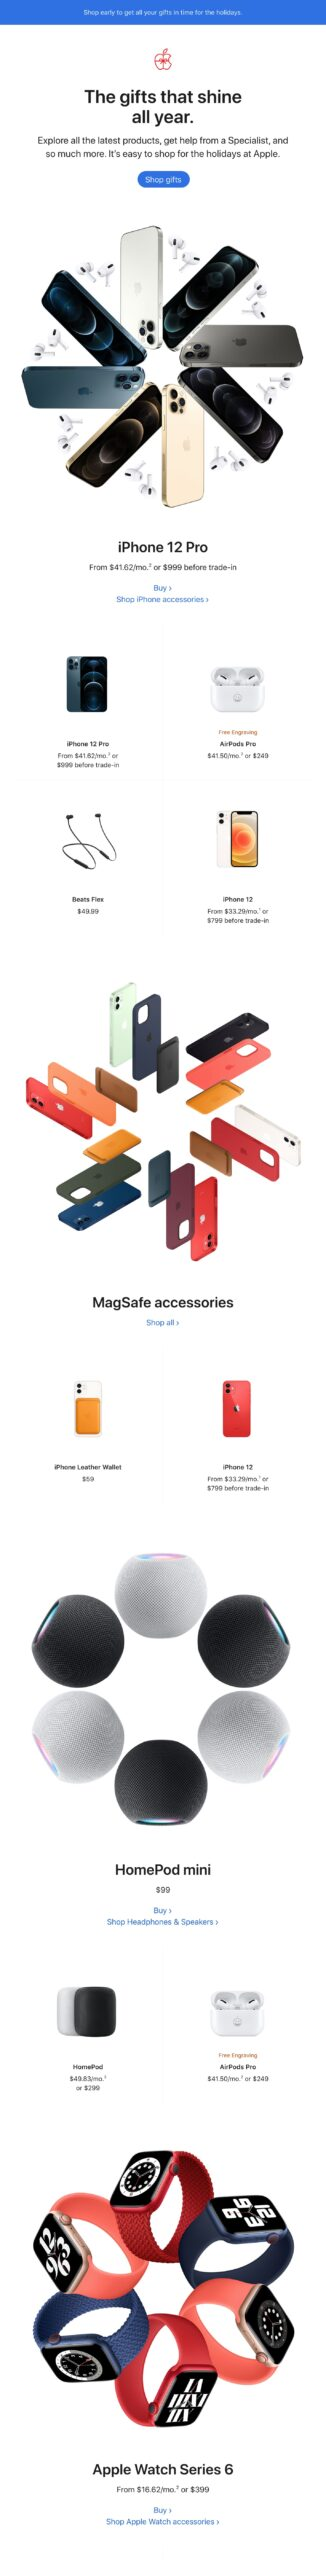 Apple email with 3D imagery